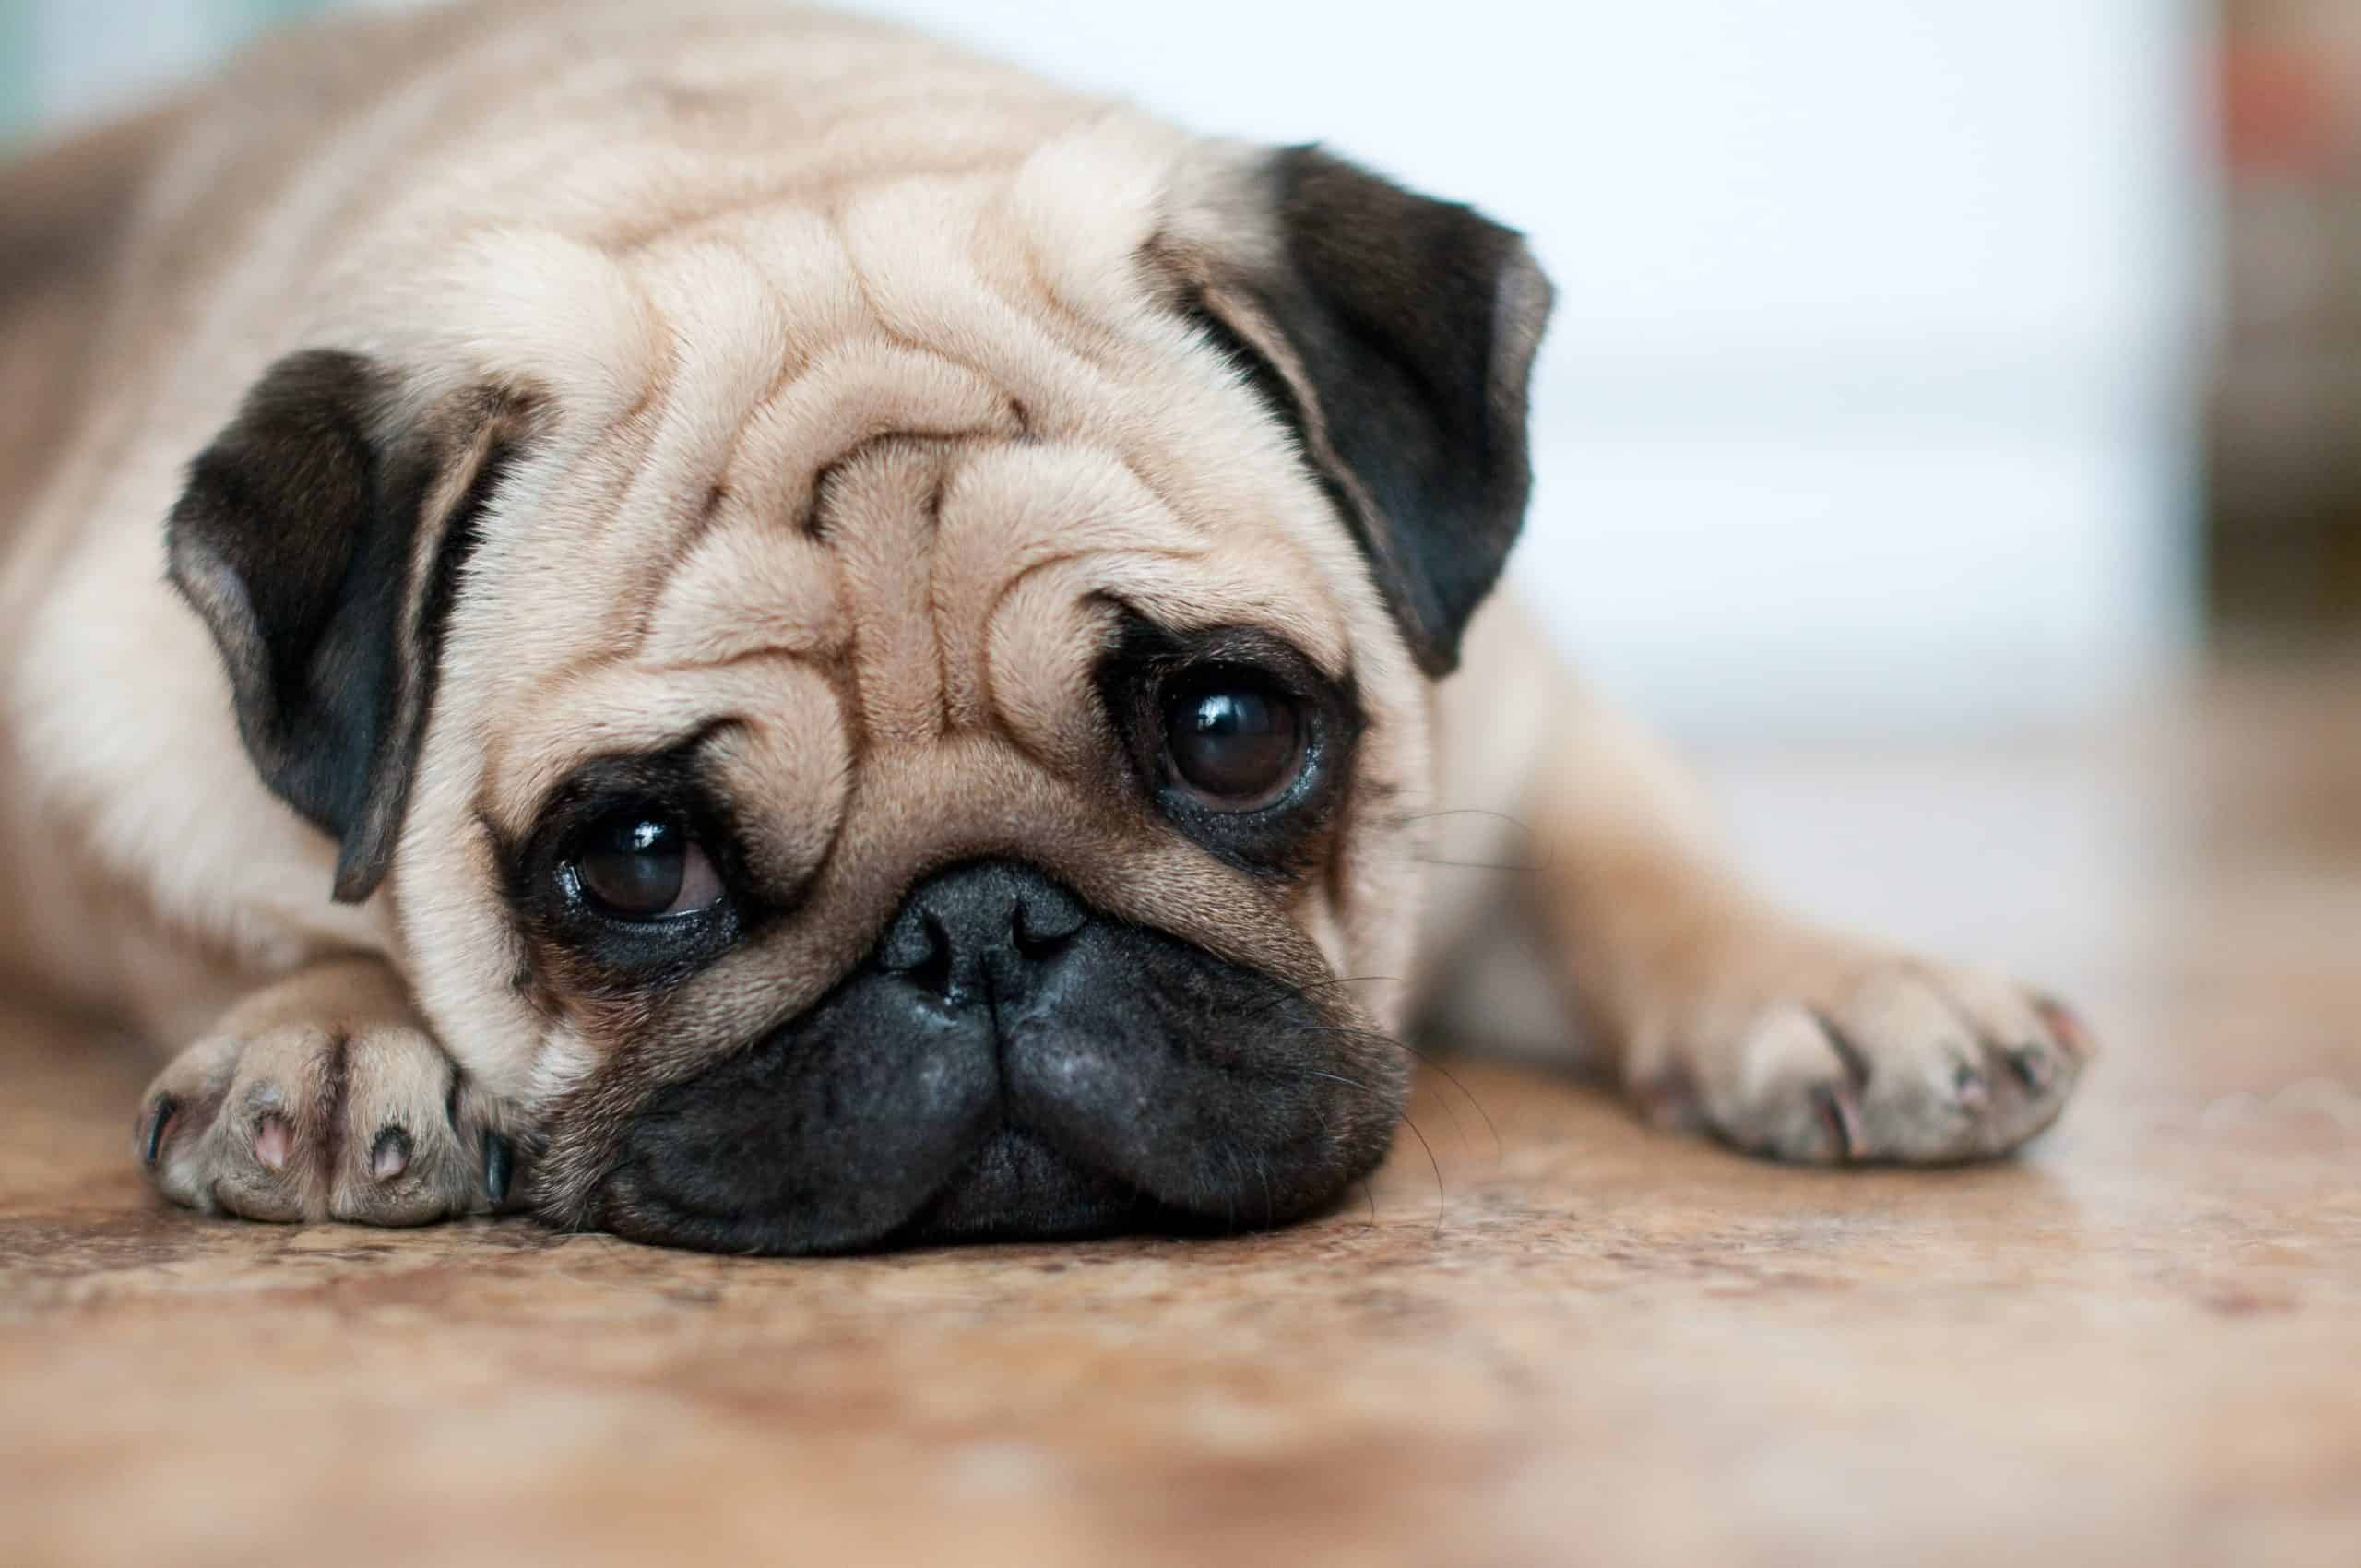 Depressed pug. Trazodone for dogs helps manage symptoms associated with separation anxiety, depression, or the need for excessive attention.